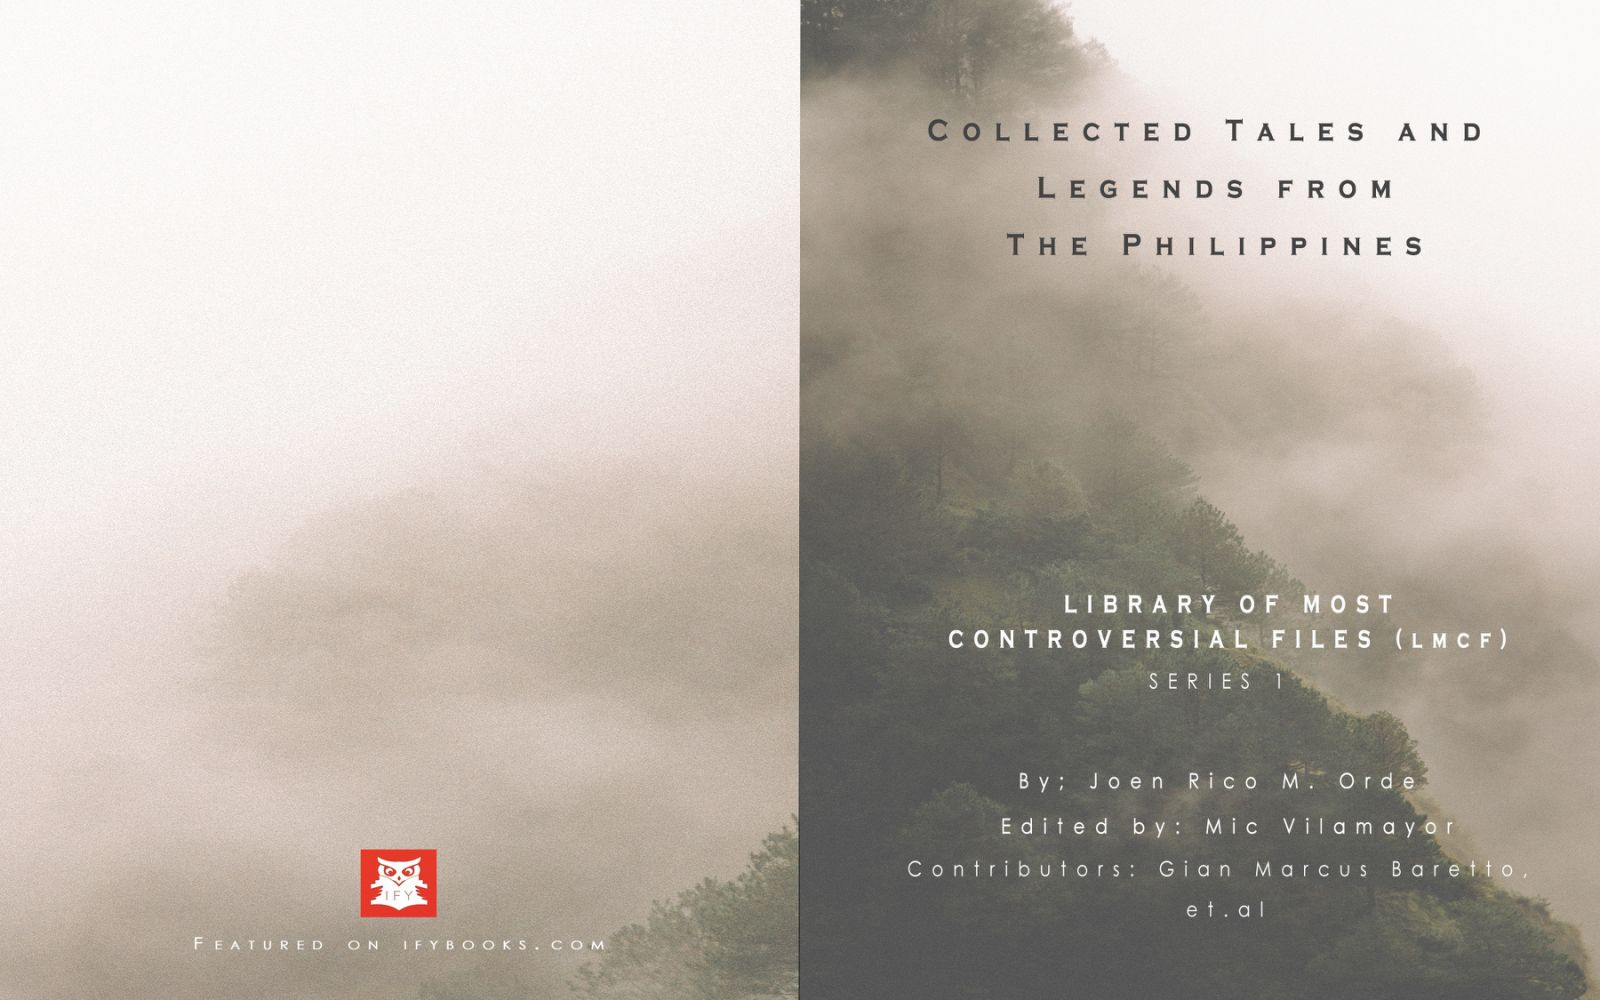 Collected Tales And Legends From The Philippines, Book Cover